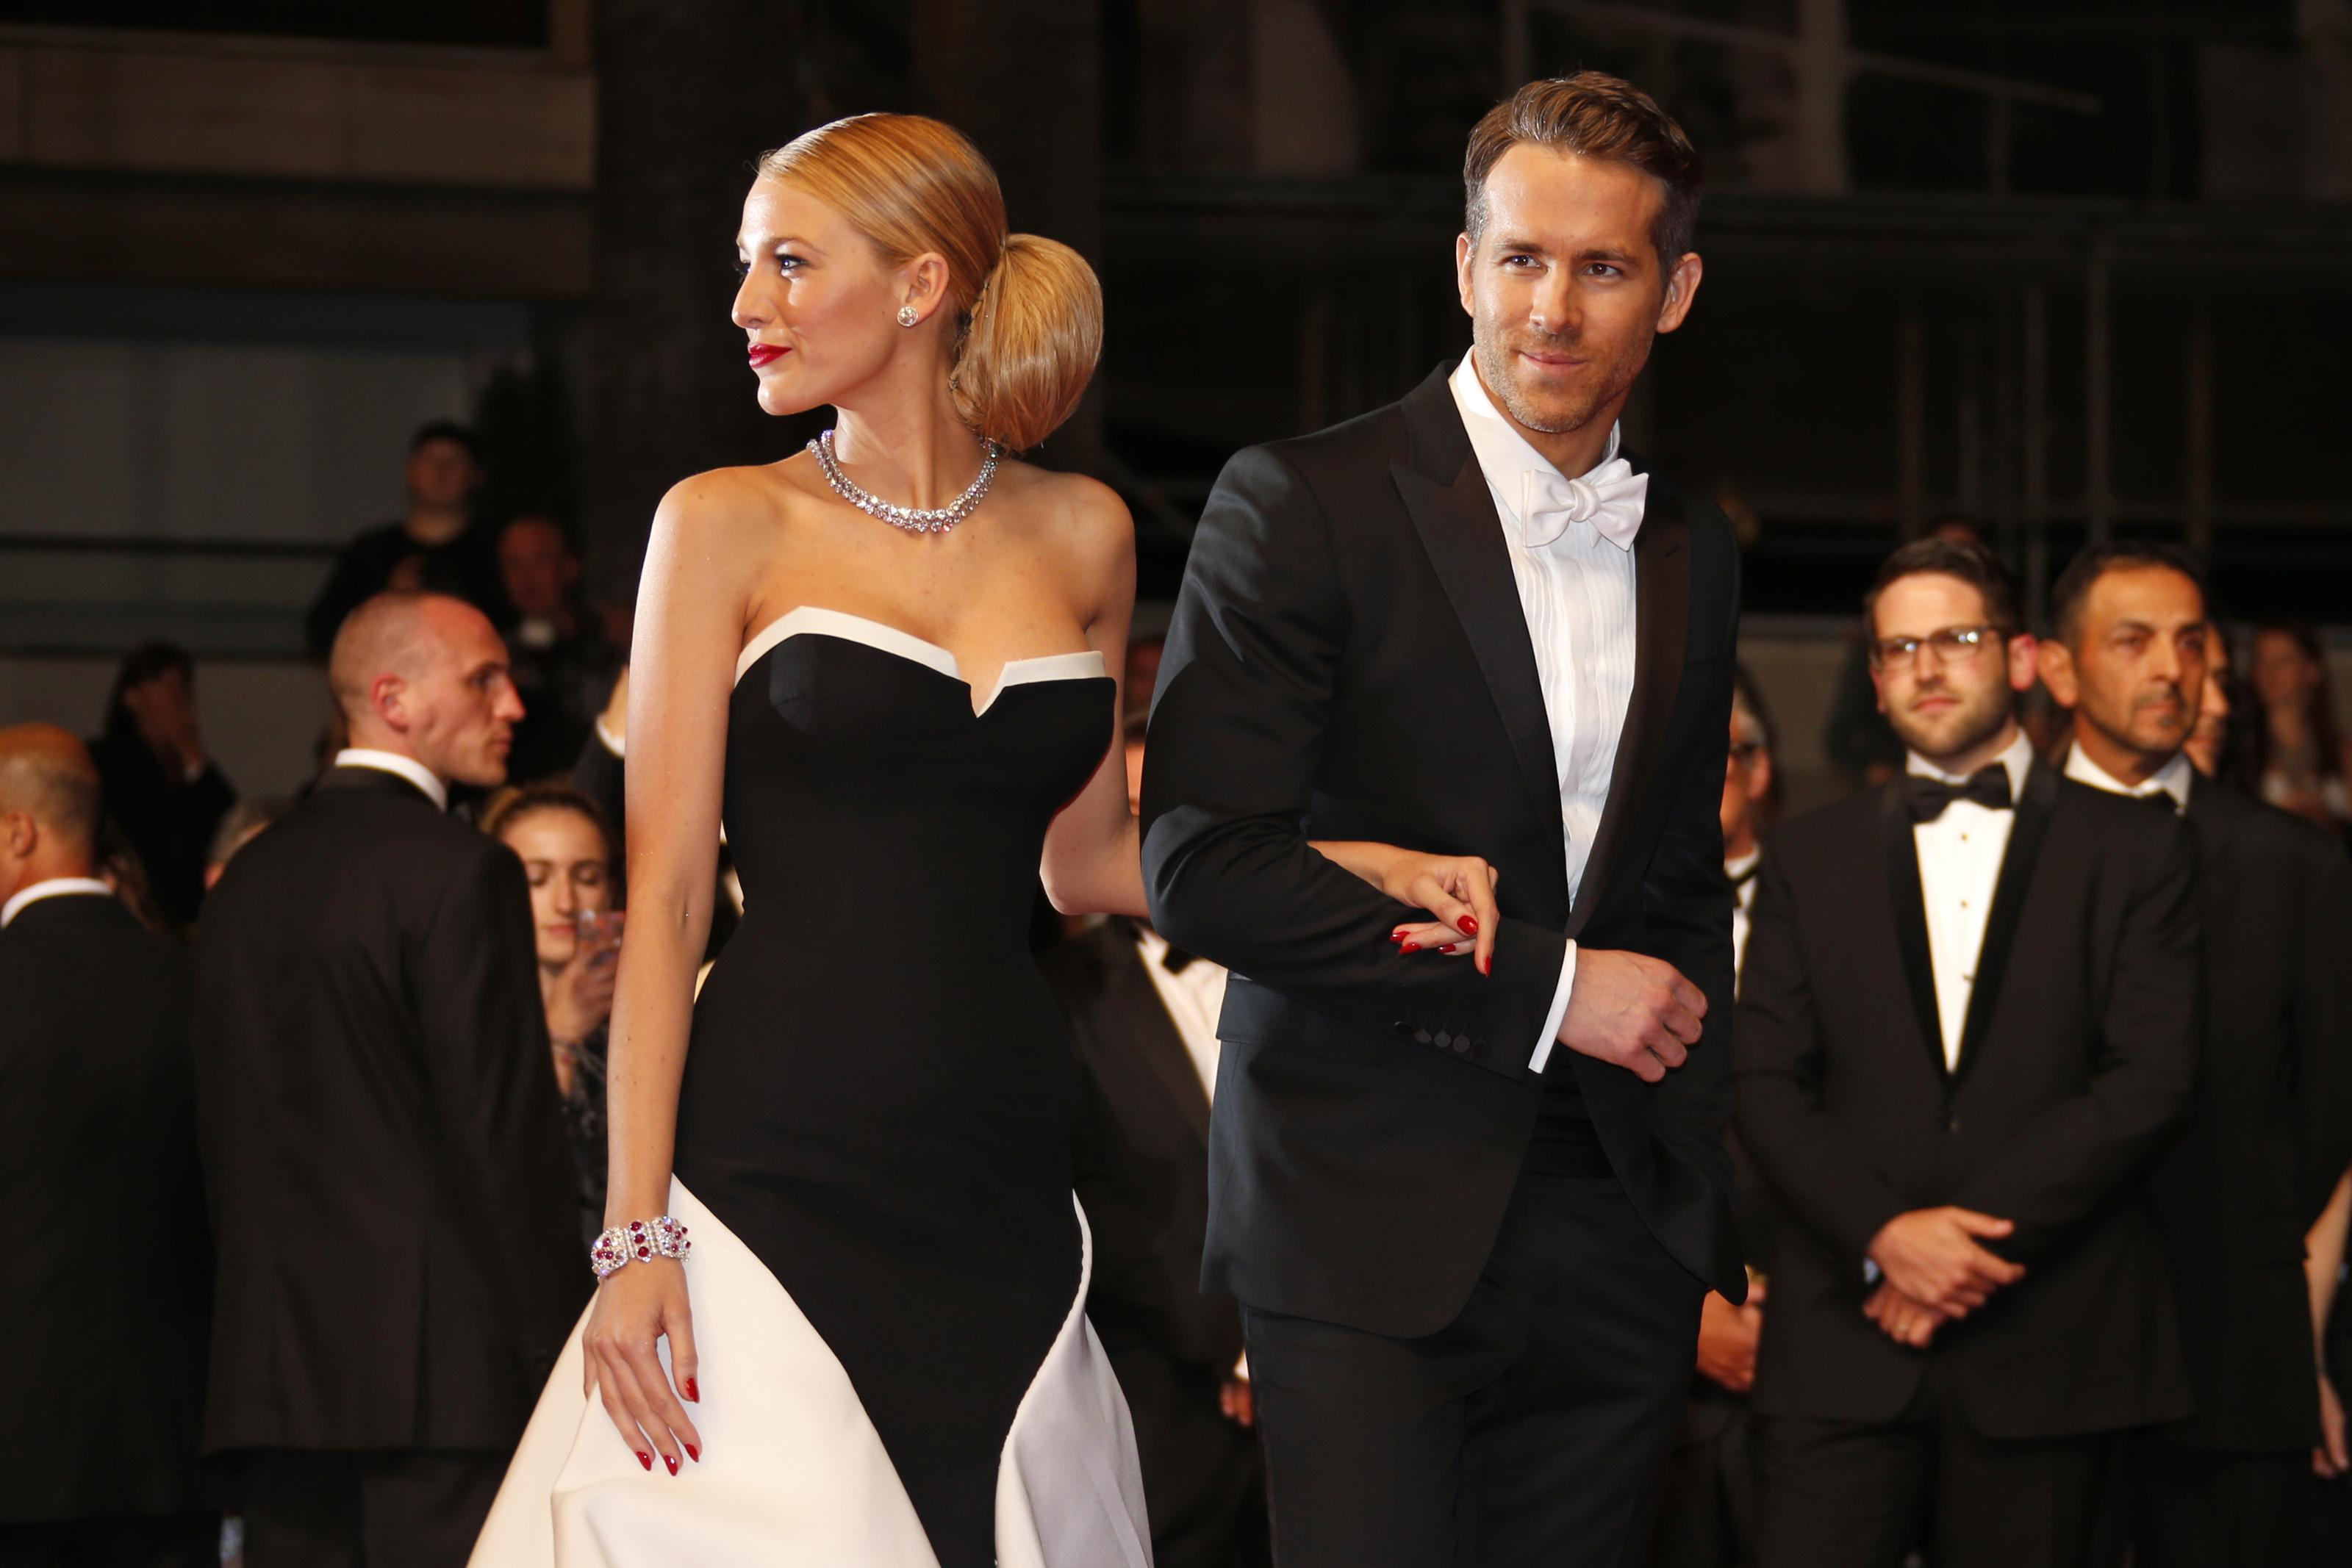 Ryan Reynolds And Blake Lively Wedding.Blake Lively Dishes On Marriage To Ryan Reynolds Calls